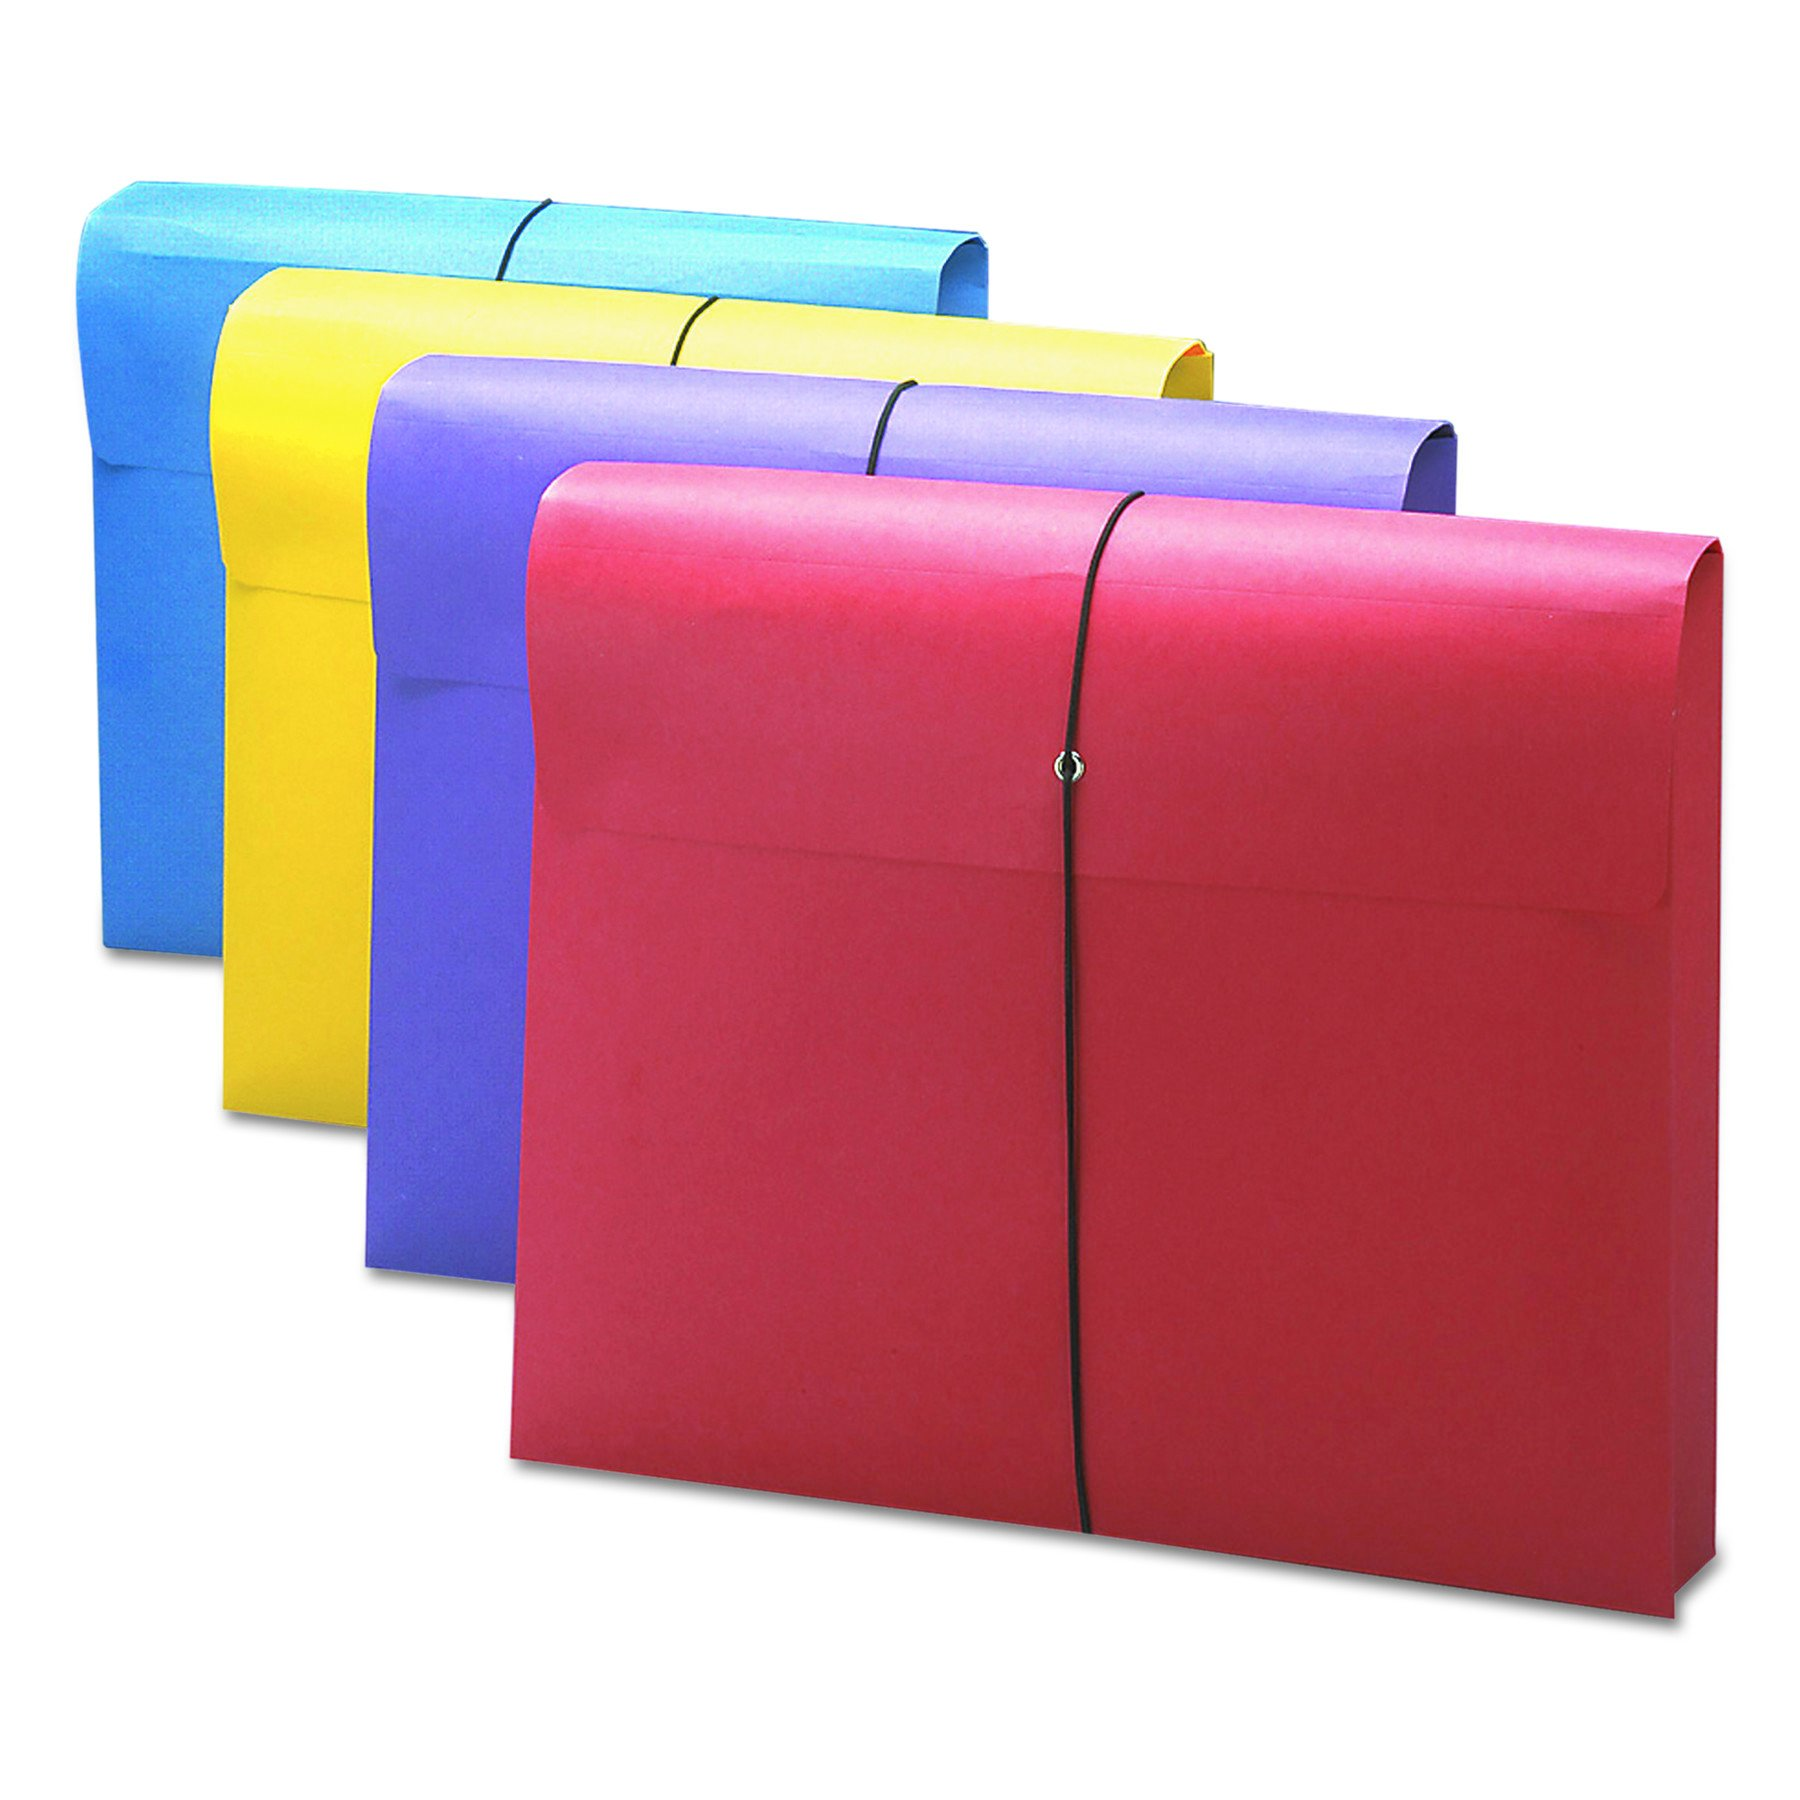 Smead 77291 2'' Exp Antimicrobial File Wallet, Letter, Four Colors (Pack of 4)